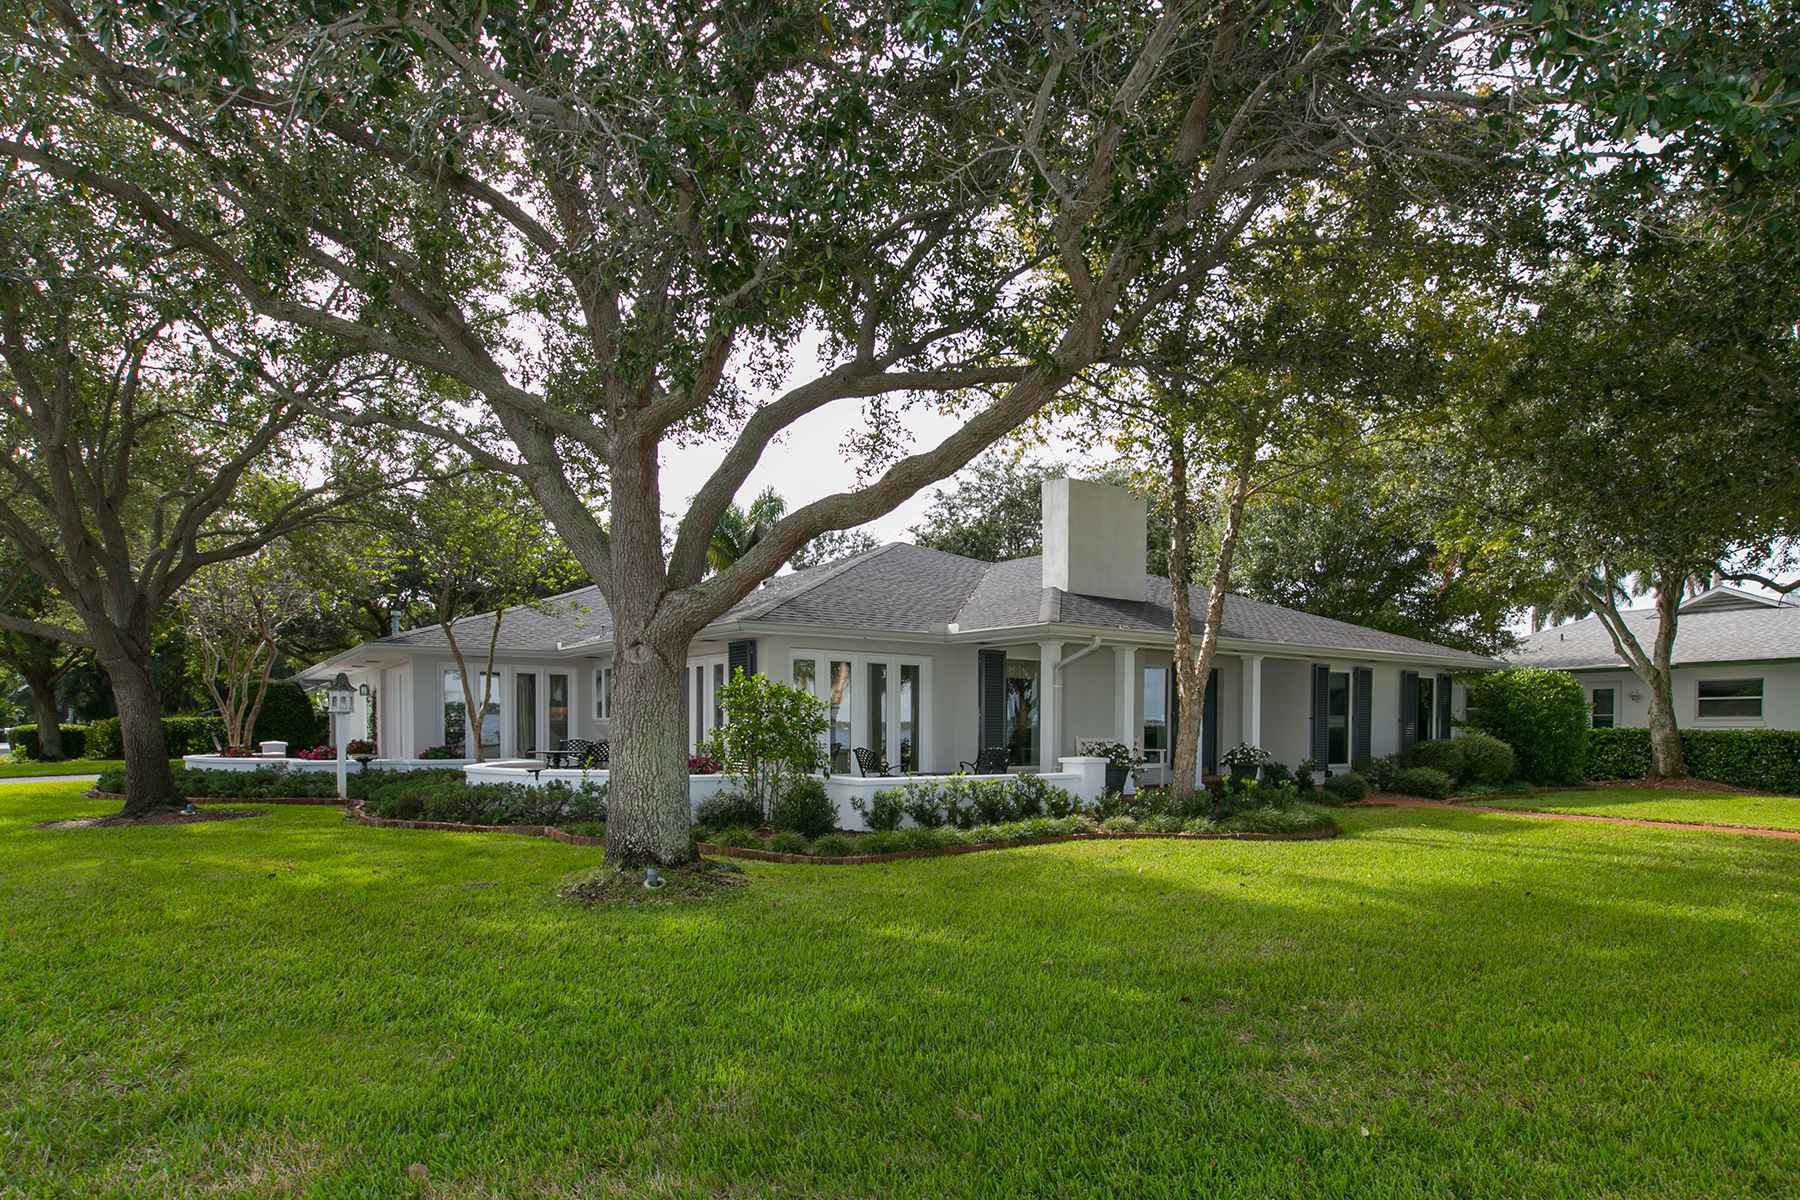 Single Family Home for Sale at MANATEE RIVER REGION 2401 Riverview Blvd Bradenton, Florida, 34205 United States